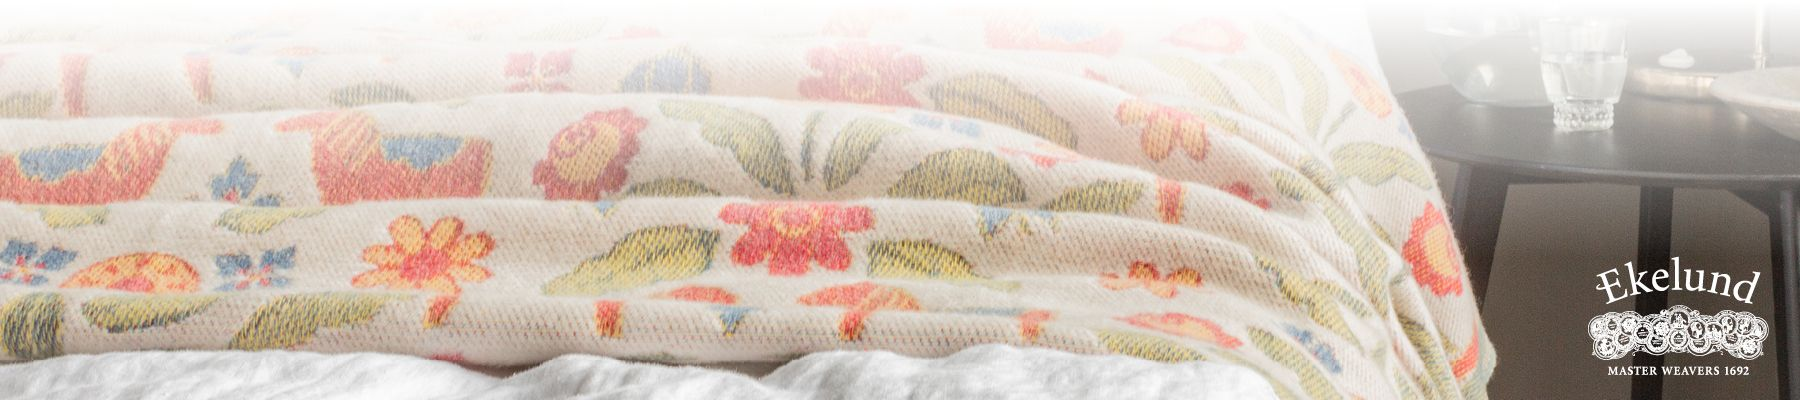 Organic Throws & Cushion - Ekelund Weavers Sweden